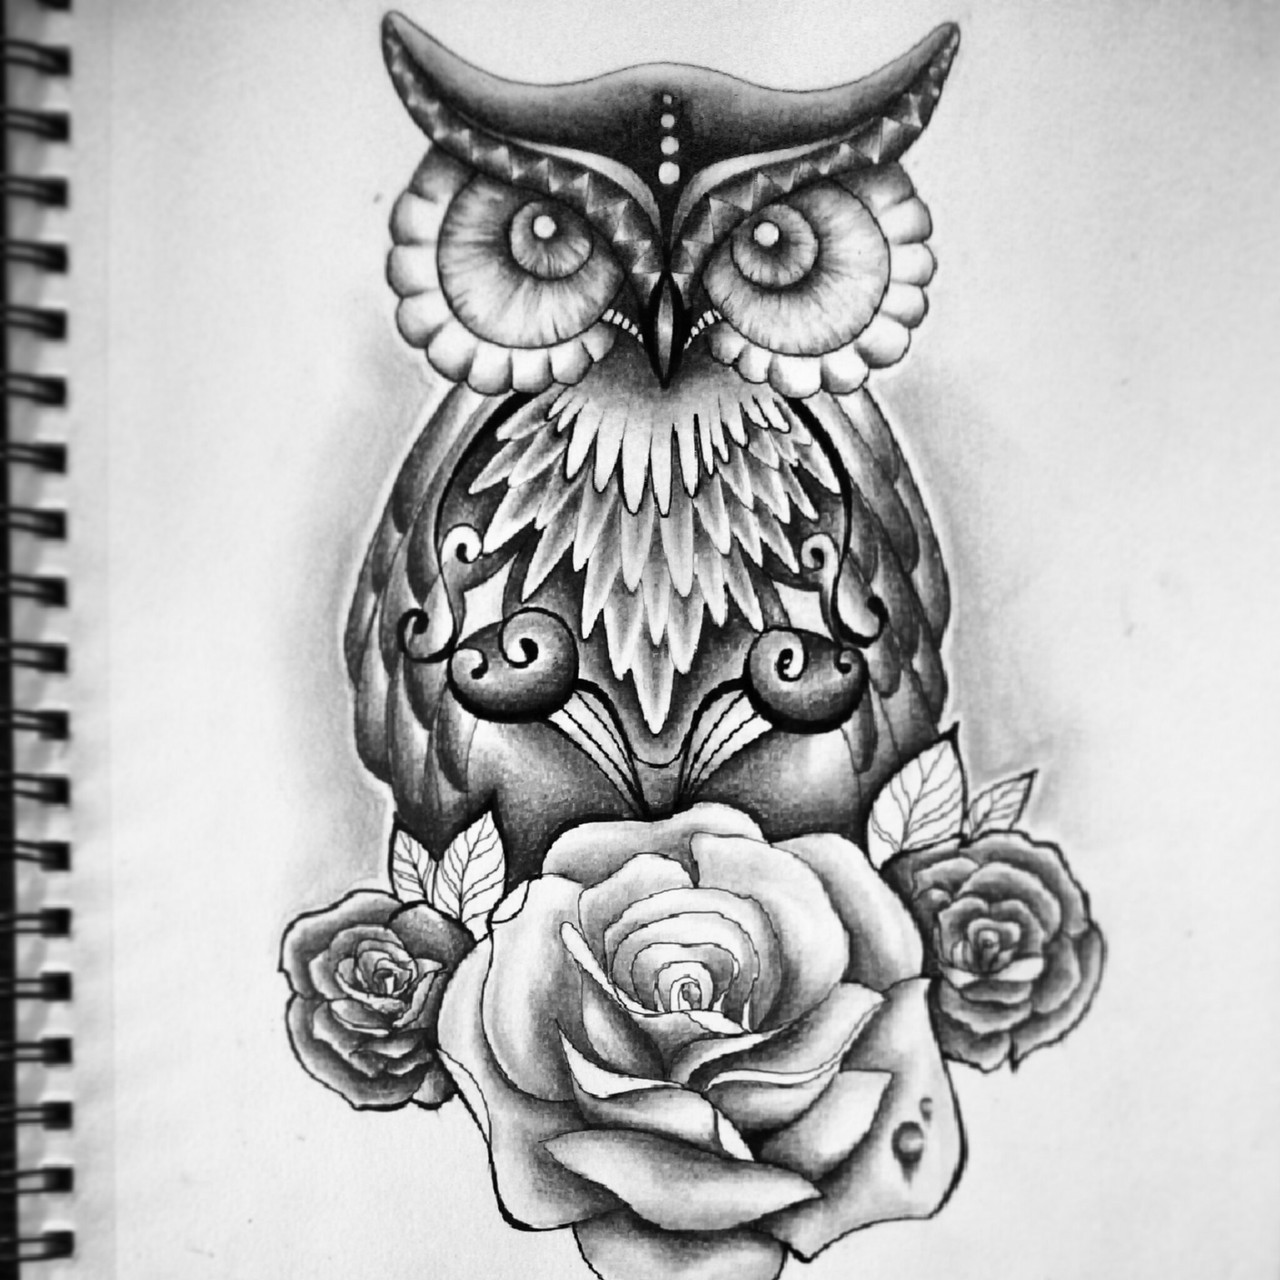 #tattoo #drawing #owl #roses by Jess Ouimet | WHI - photo#14